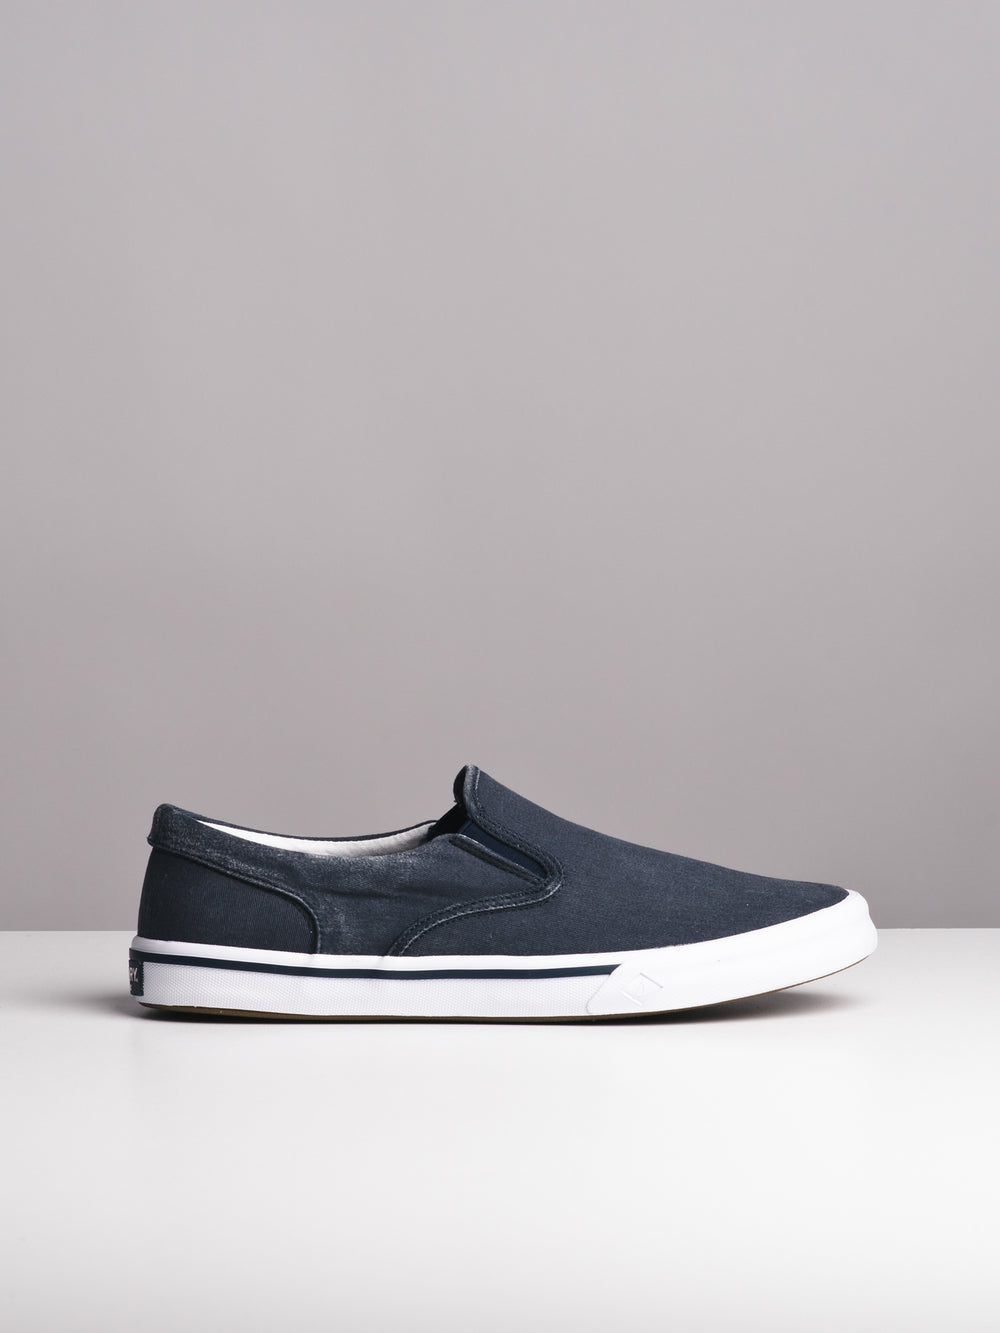 94b33f6968 MENS STRIPER II TWIN GORE NAVY SLIP-ONS- CLEARANCE